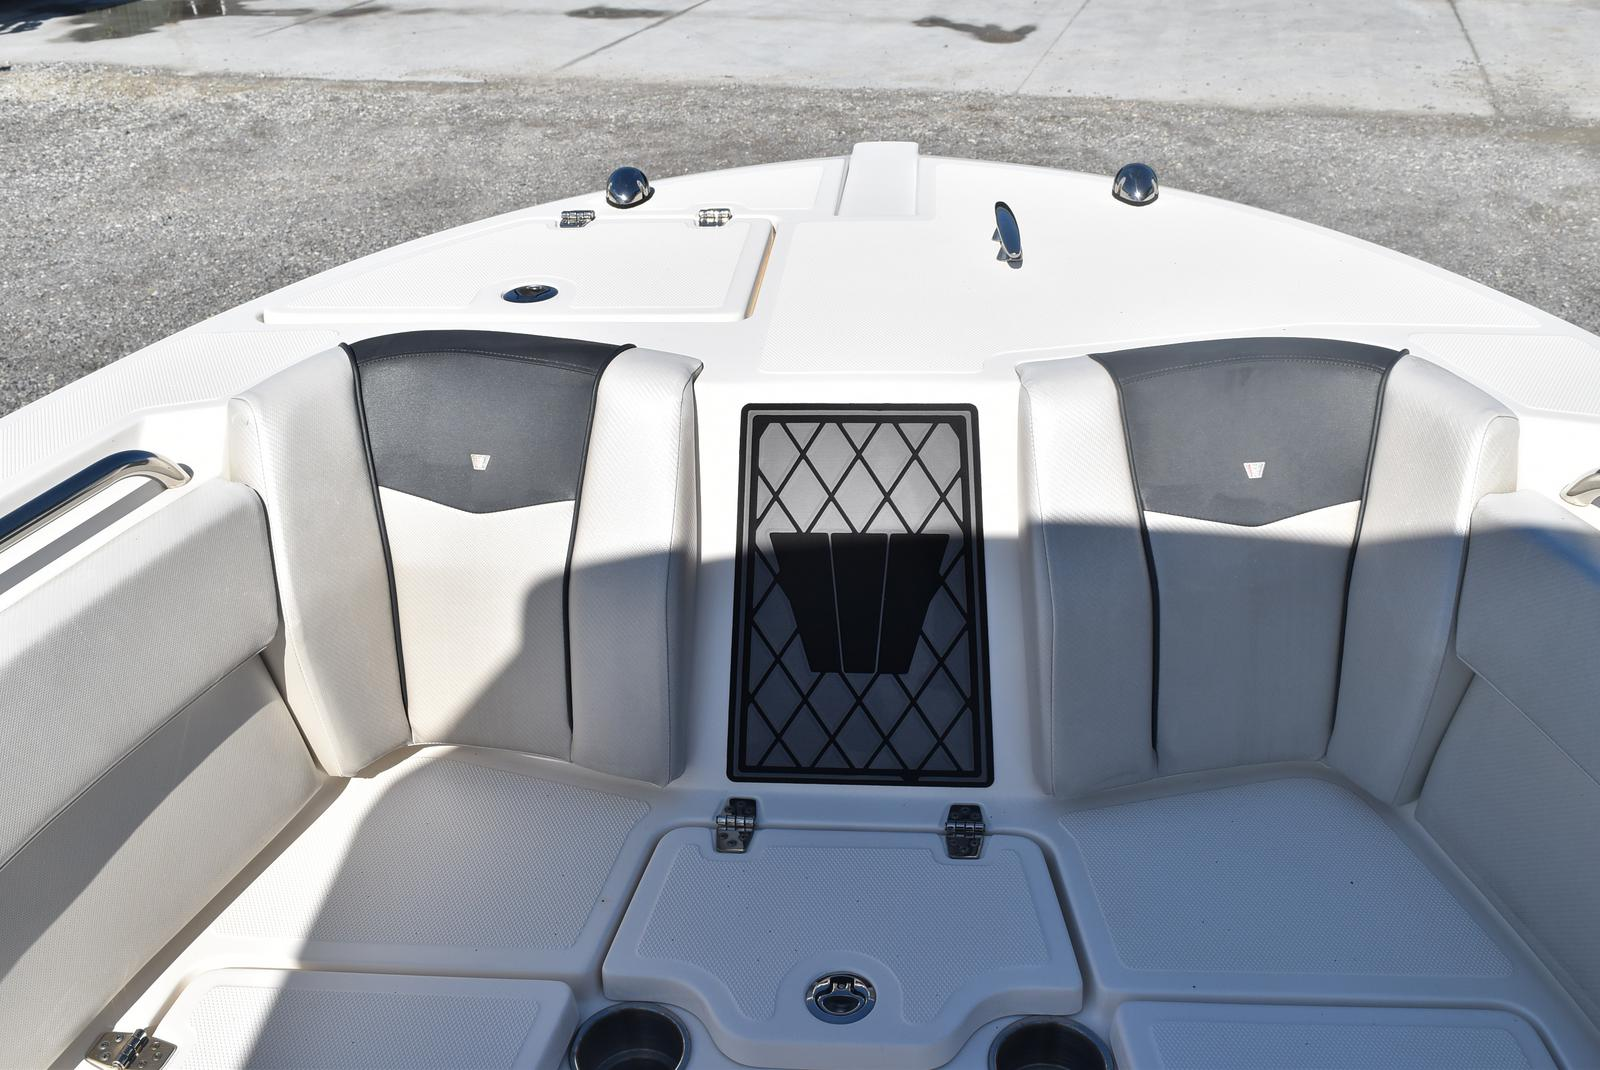 2016 Wellcraft boat for sale, model of the boat is 242 & Image # 8 of 19